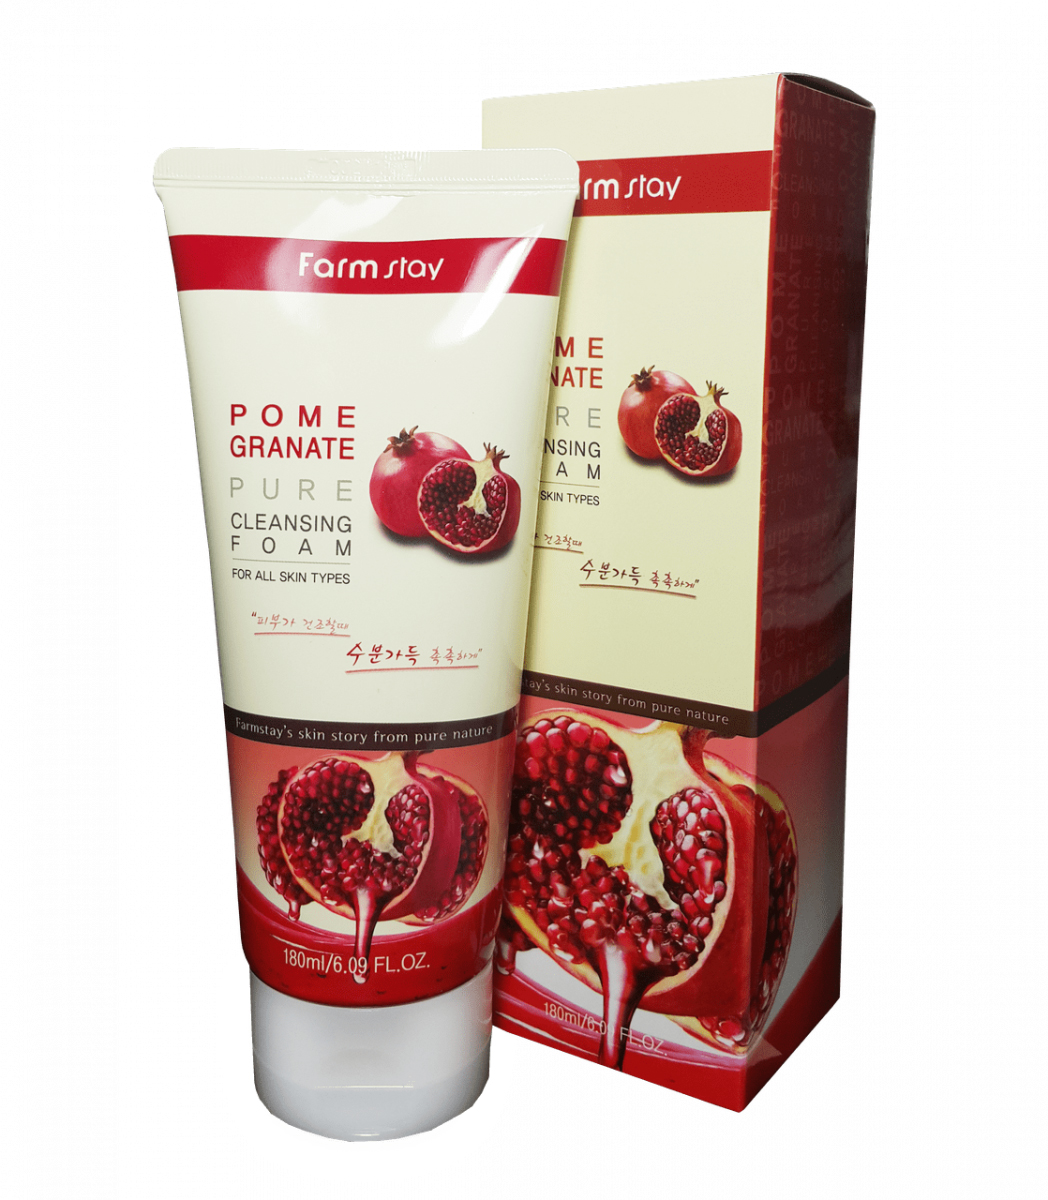 Очищающая пенка с экстрактом граната FarmStay Pomegranate Pure Cleansing Foam, 180мл farmstay гель спрей для лица с экстрактом граната farmstay farmstay it s real pomegranate gel mist 120 мл